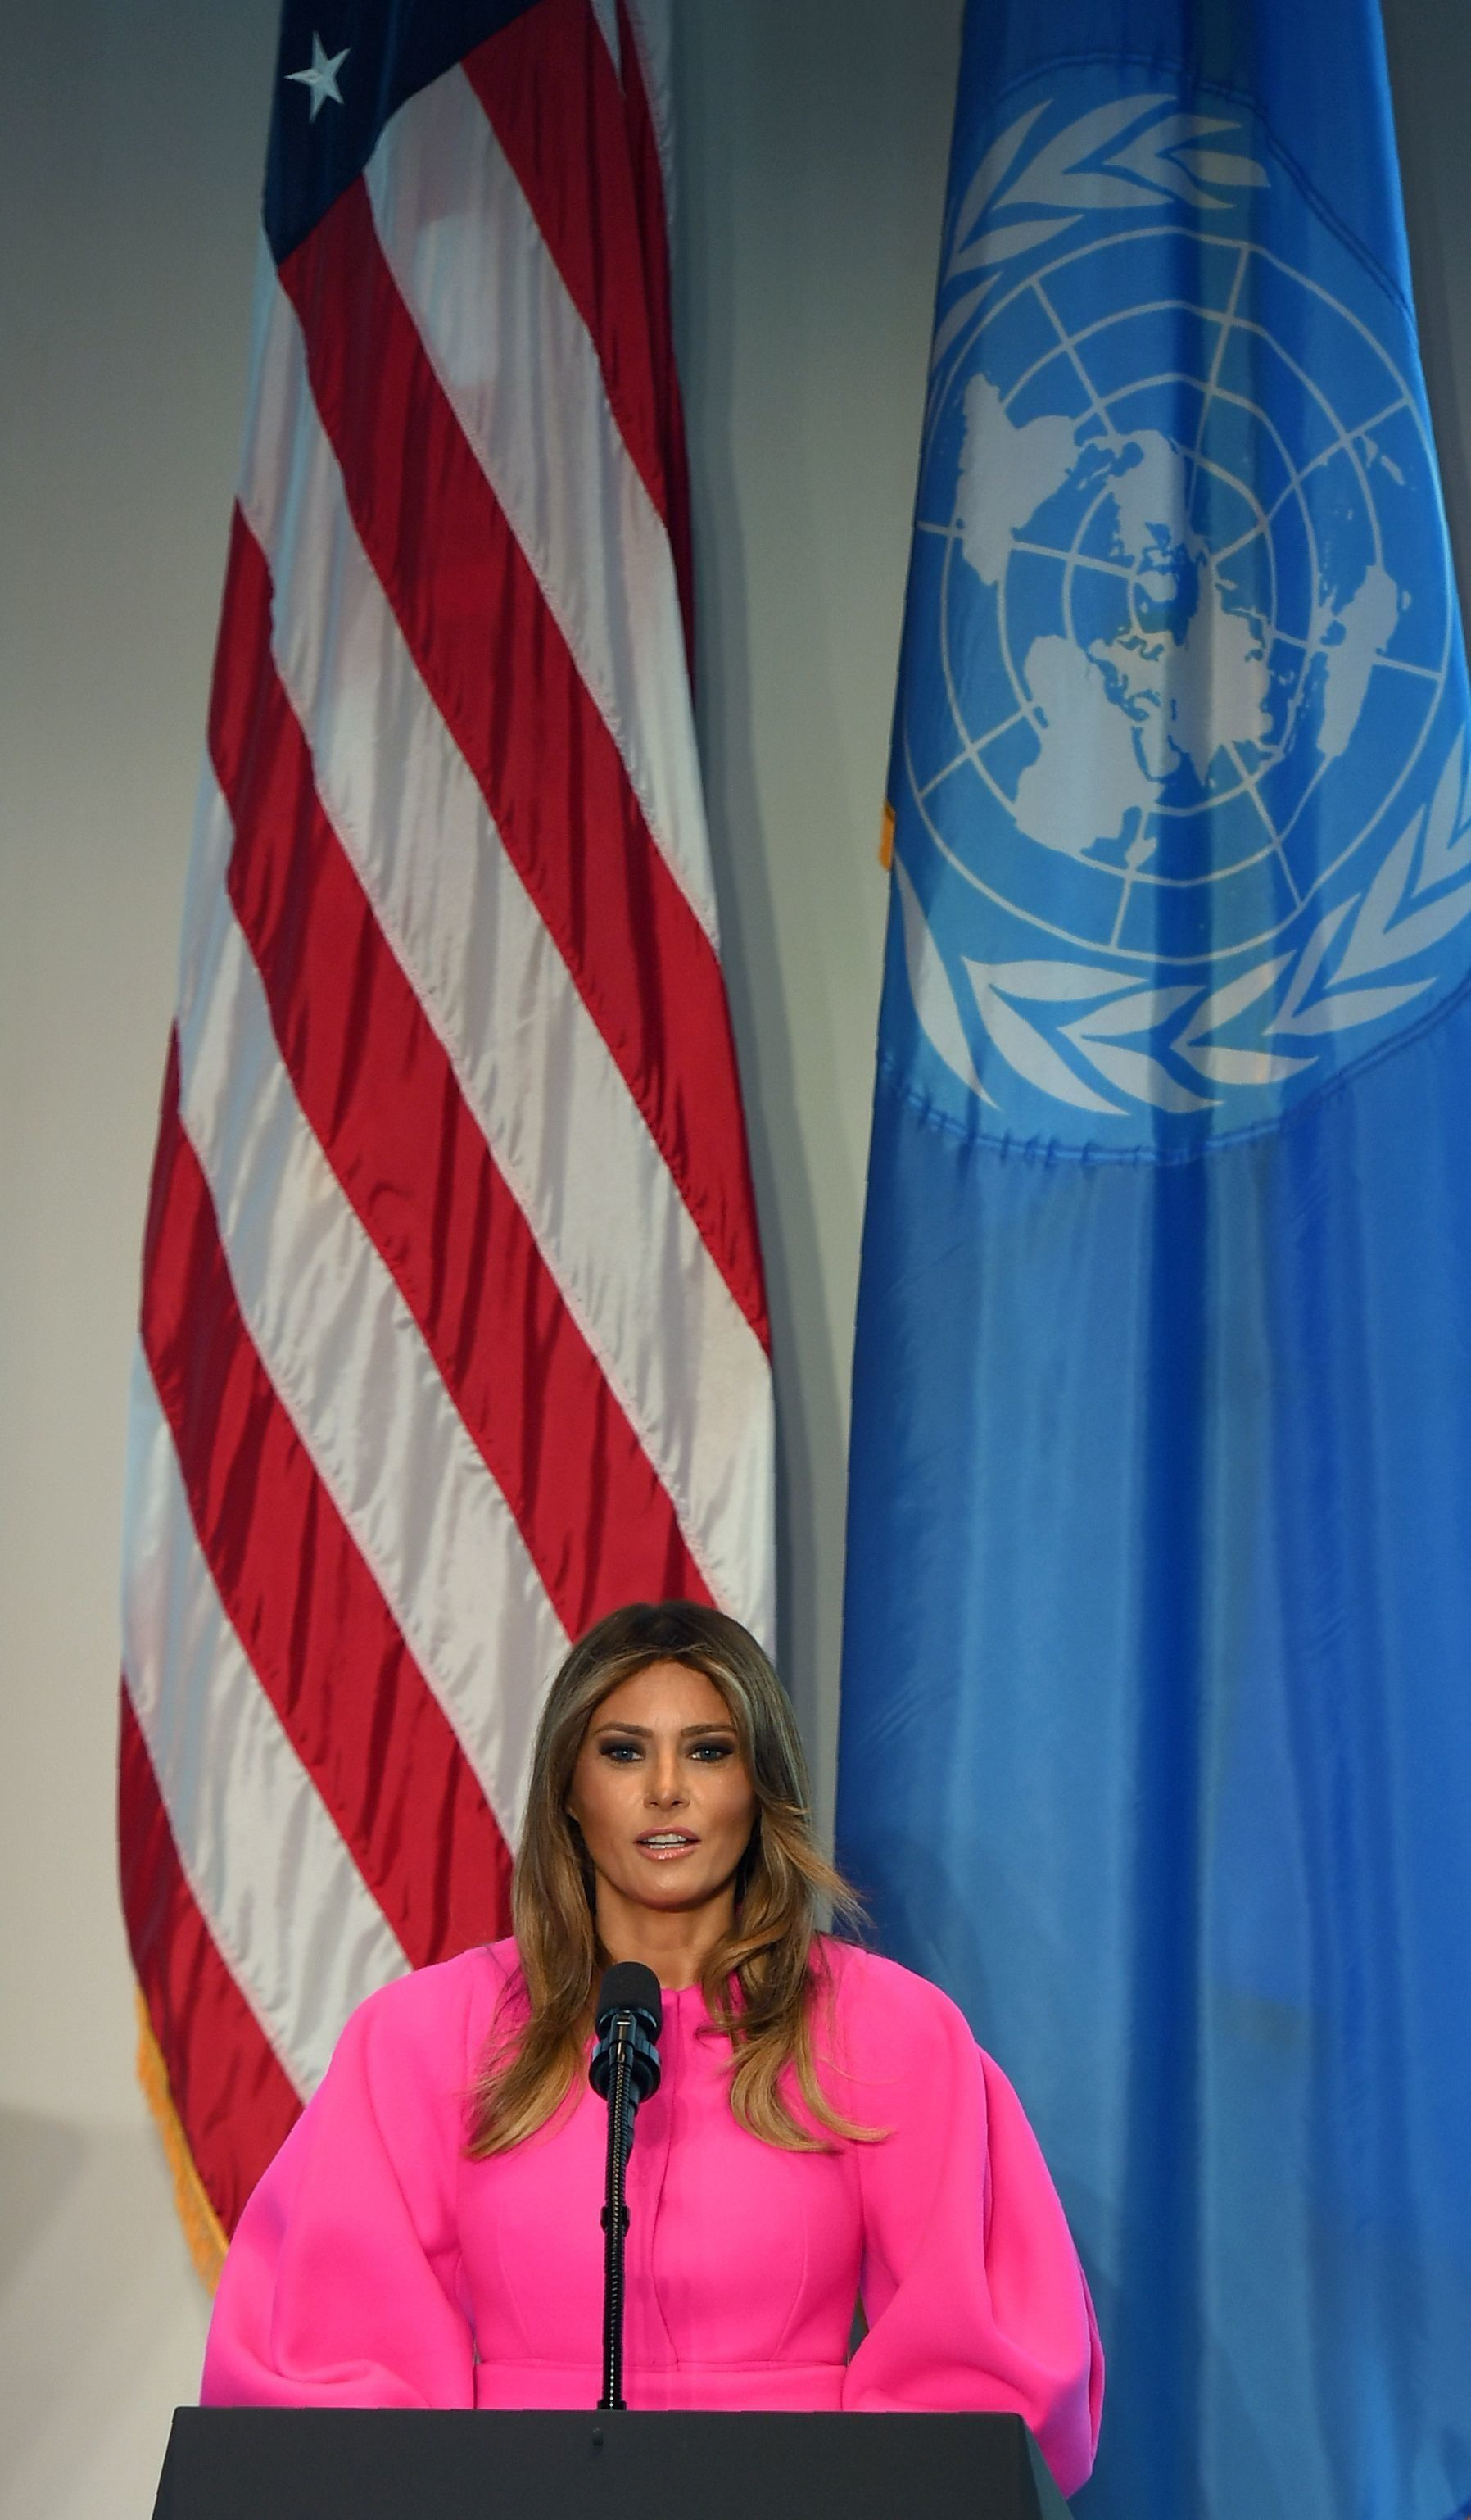 US First Lady Melania Trump addresses other spouses of world leaders at a United Nations luncheon on September 20, 2017, in the United States Mission in New York.  The First Lady addressed the issue of vulnerable children around the world. / AFP PHOTO / DON EMMERT        (Photo credit should read DON EMMERT/AFP/Getty Images)